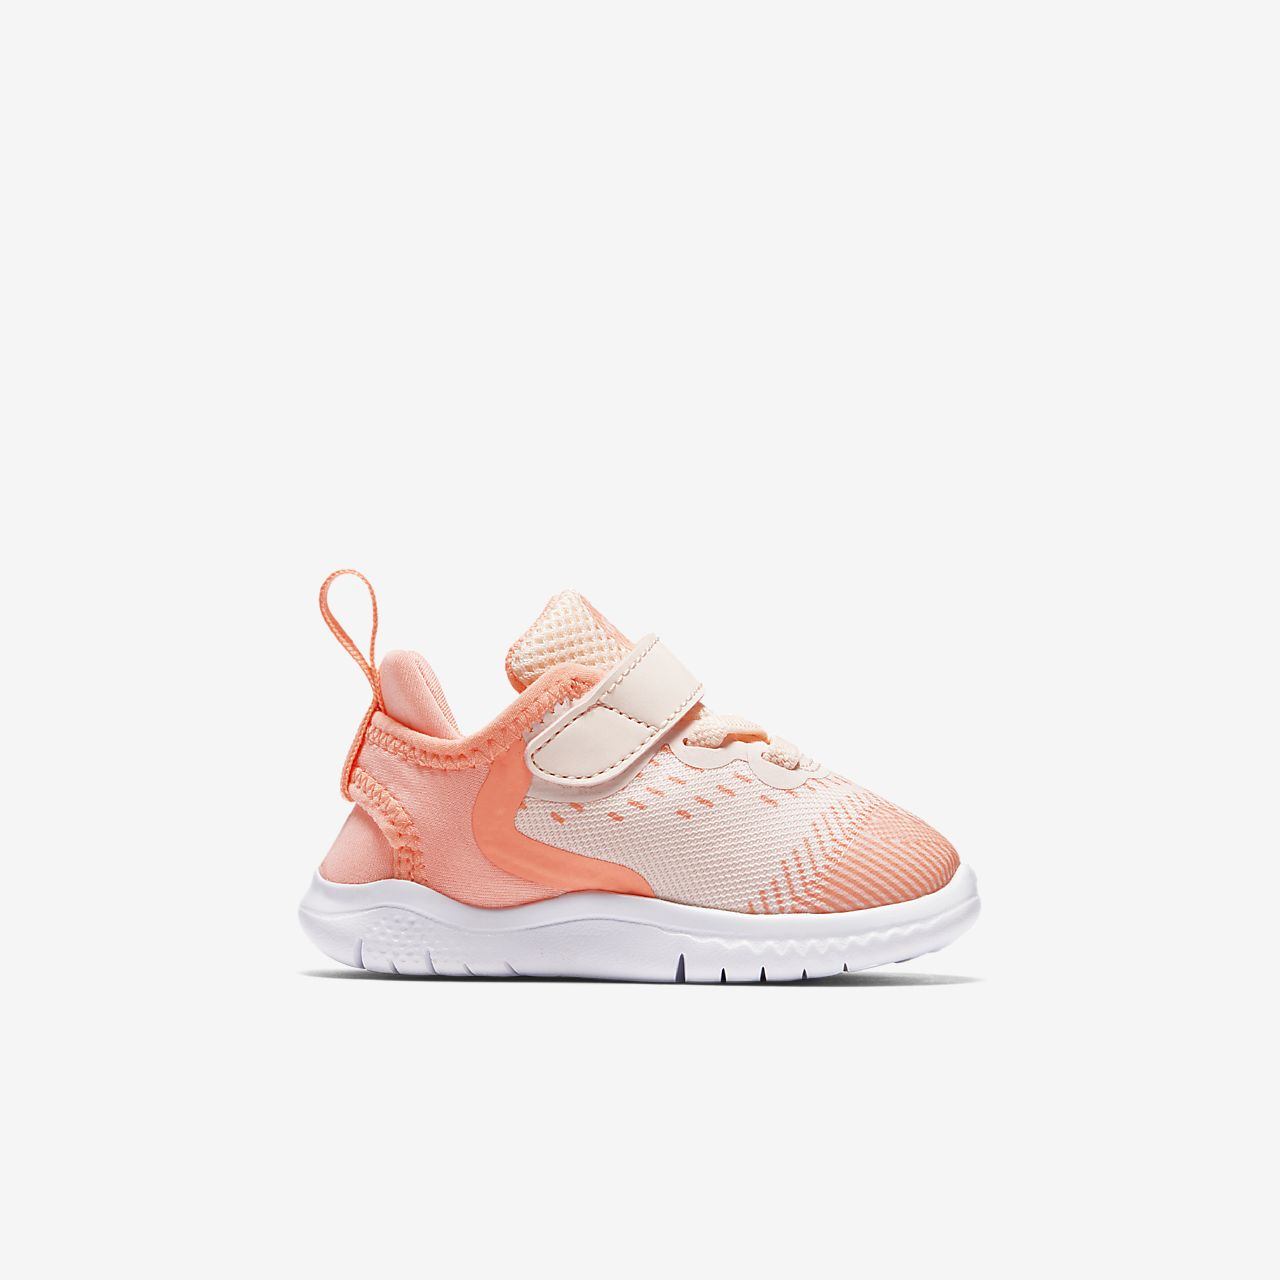 the latest b78e3 647a1 Nike Free RN 2018 Baby & Toddler Shoe